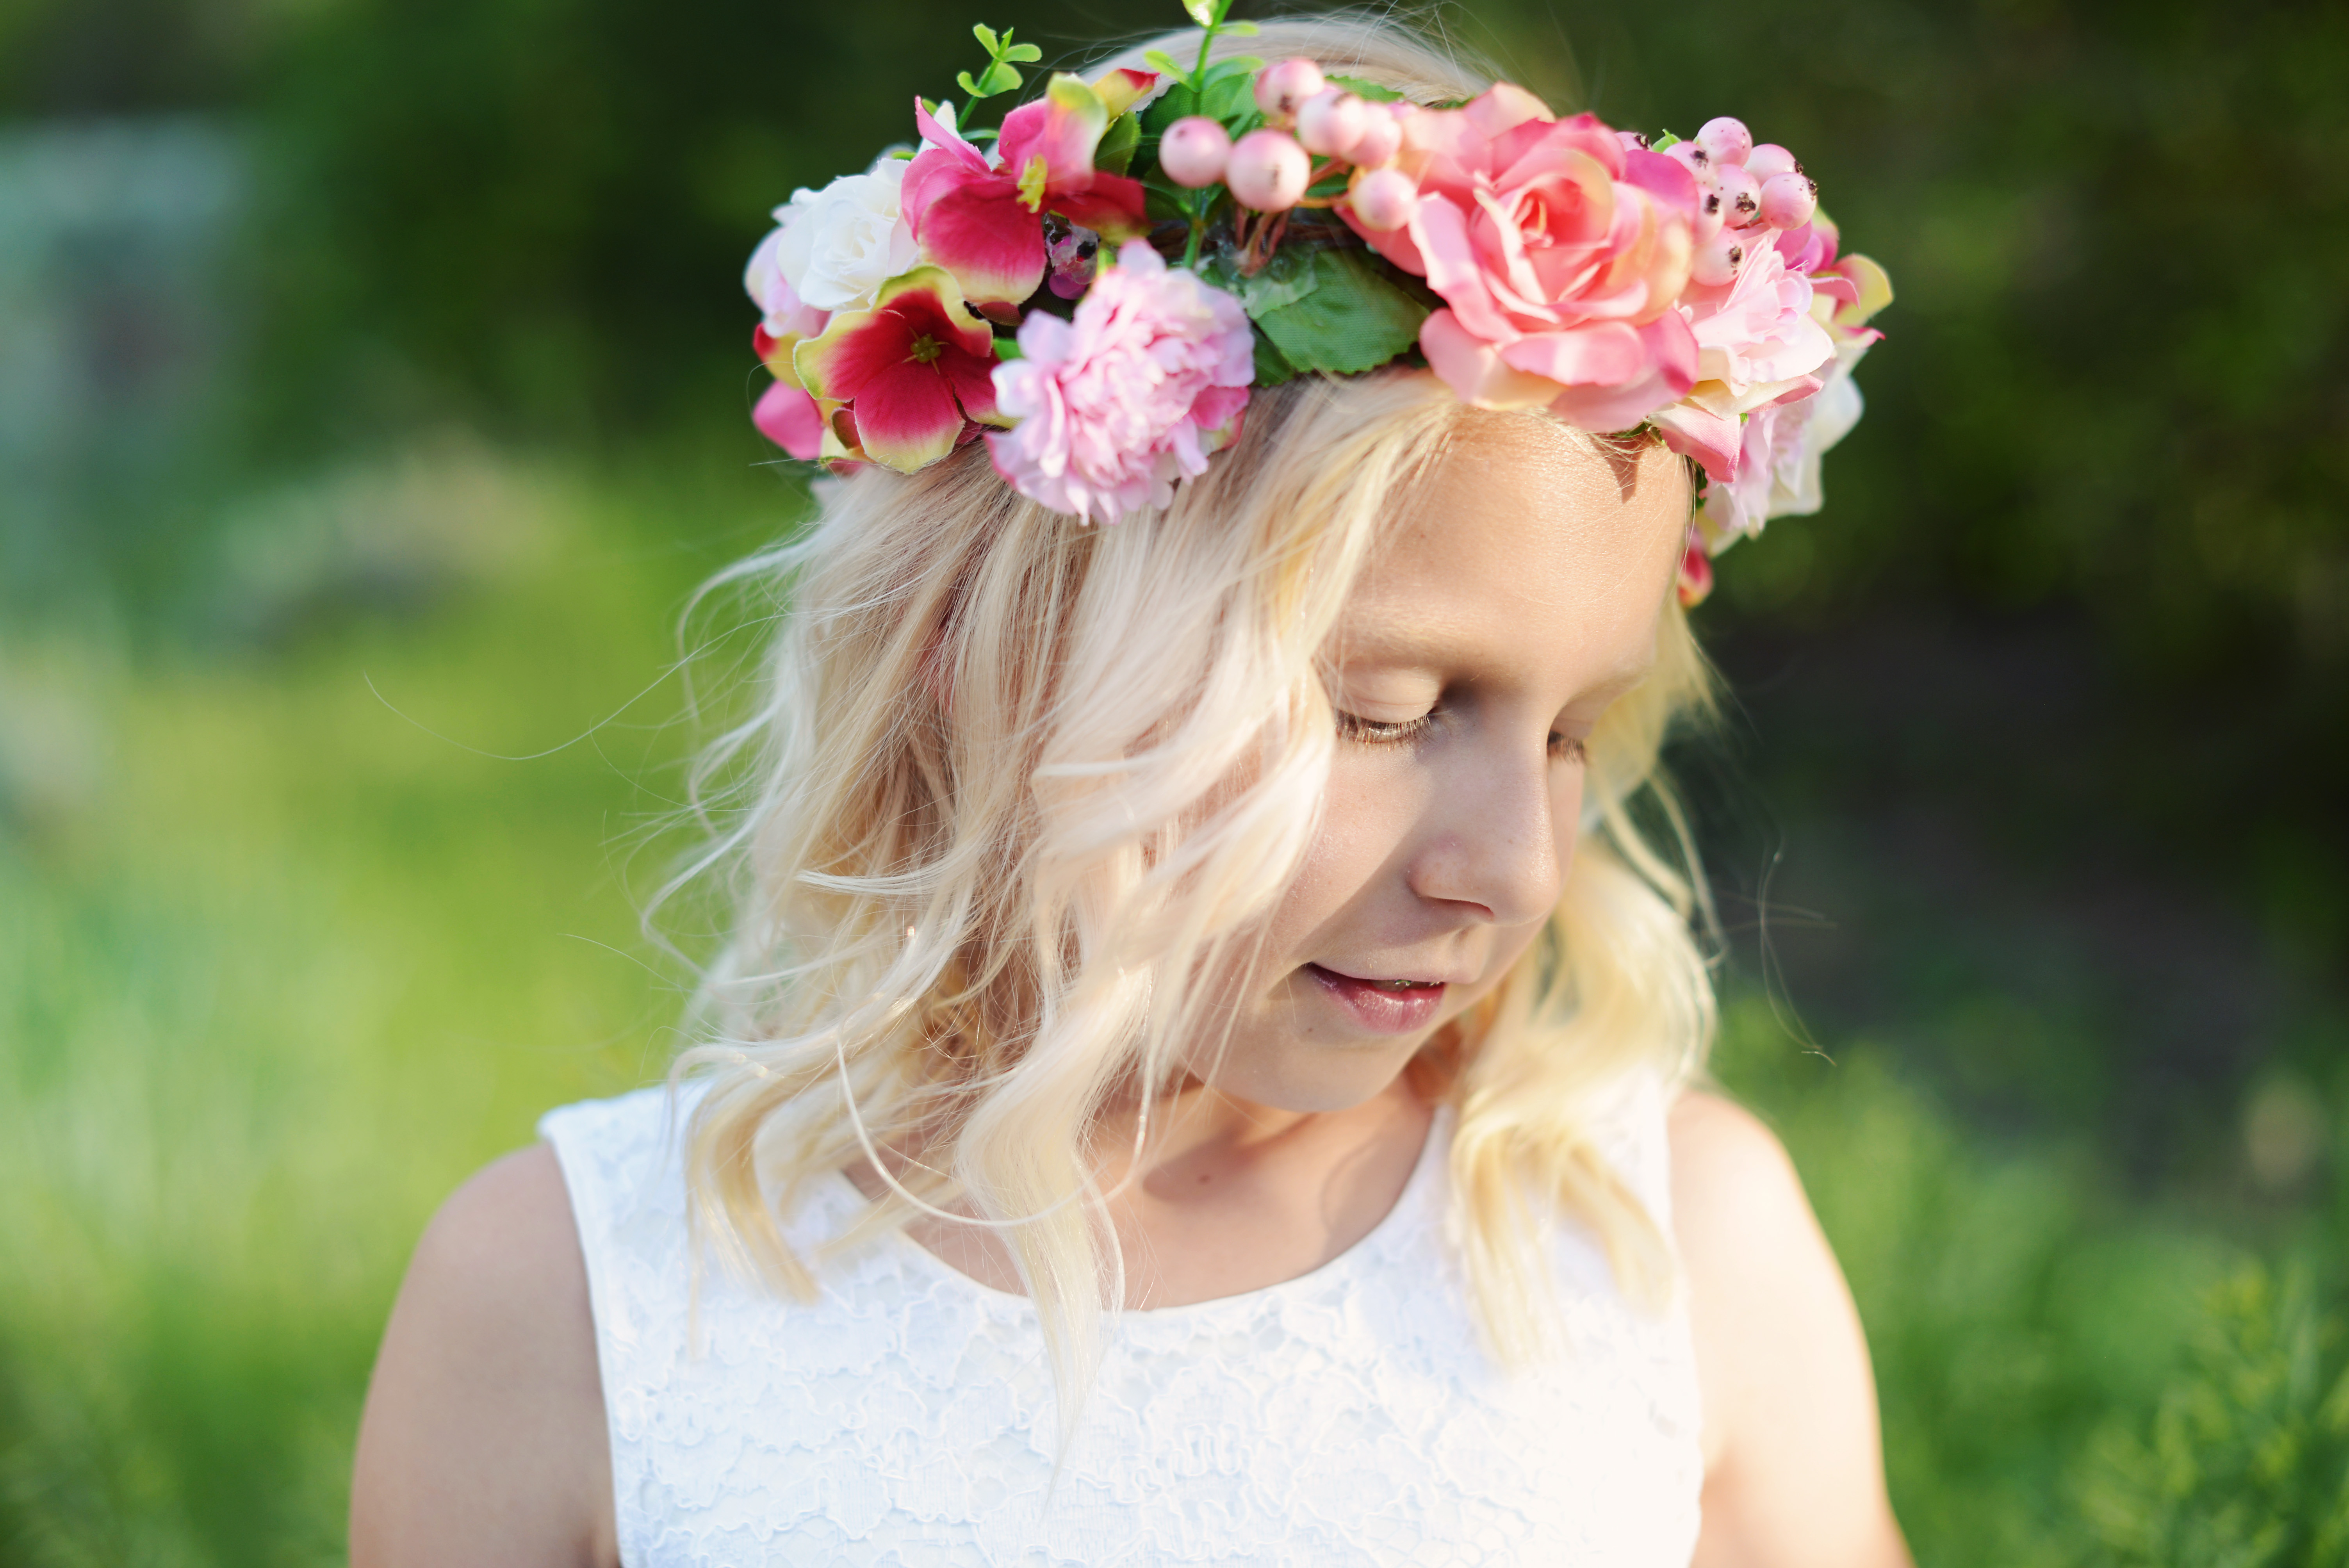 Visit Our Range Of Handmade Floral Hair Crowns And Wreaths By Gilly